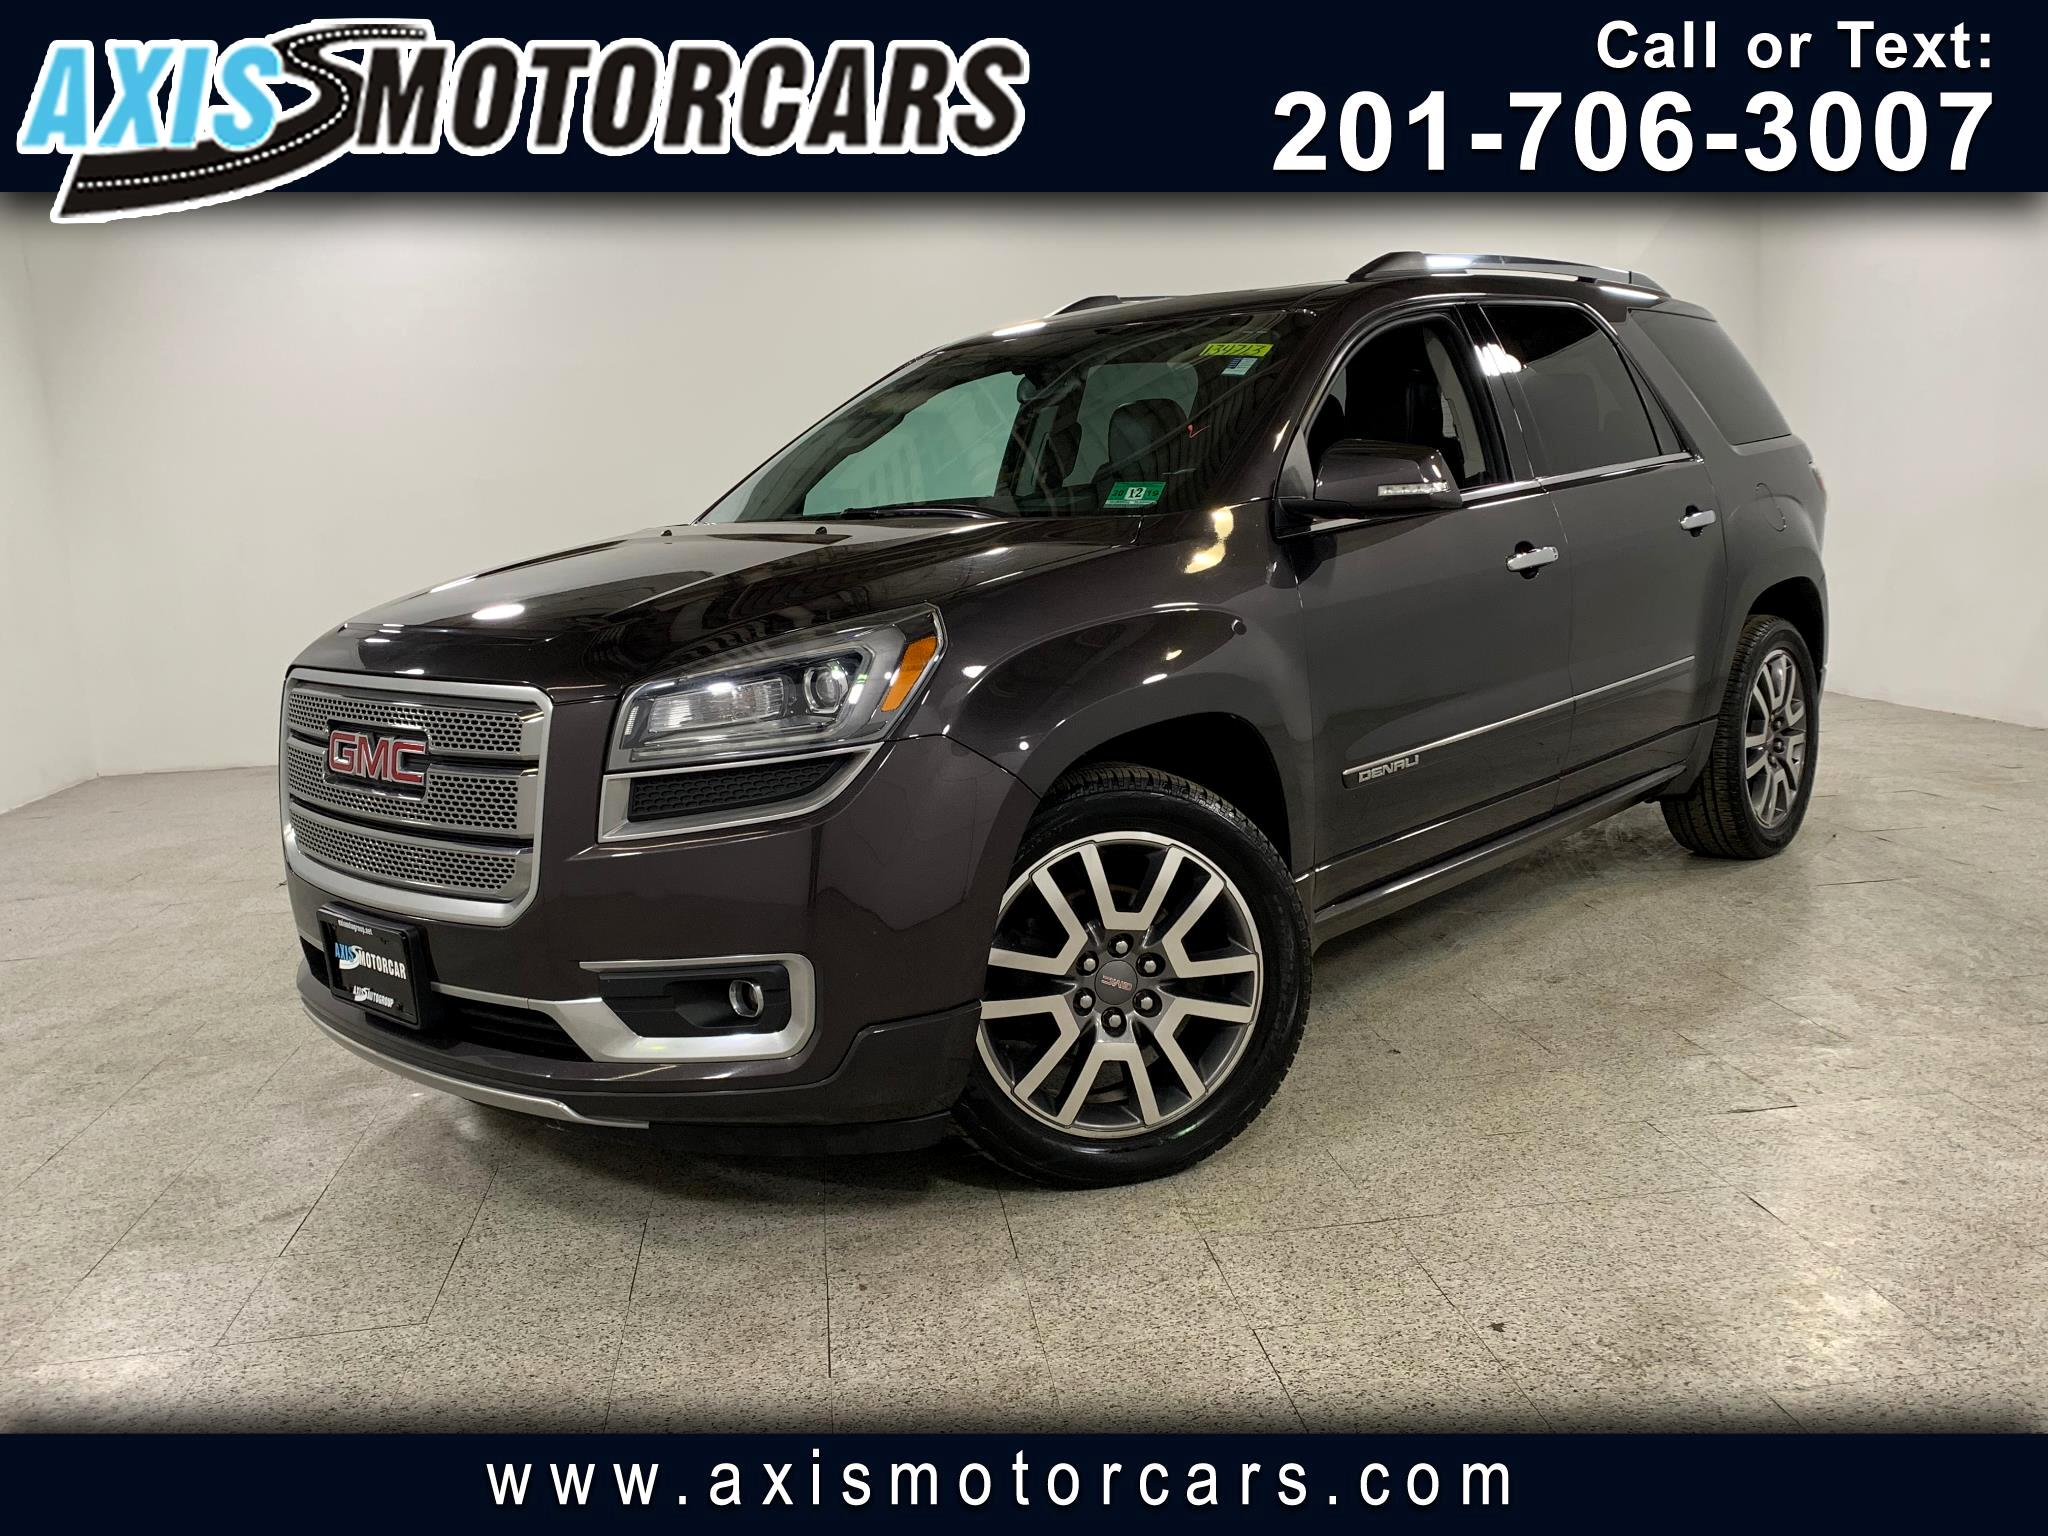 2013 GMC Acadia w/Bose Sound System Rear Entertainment Navigation